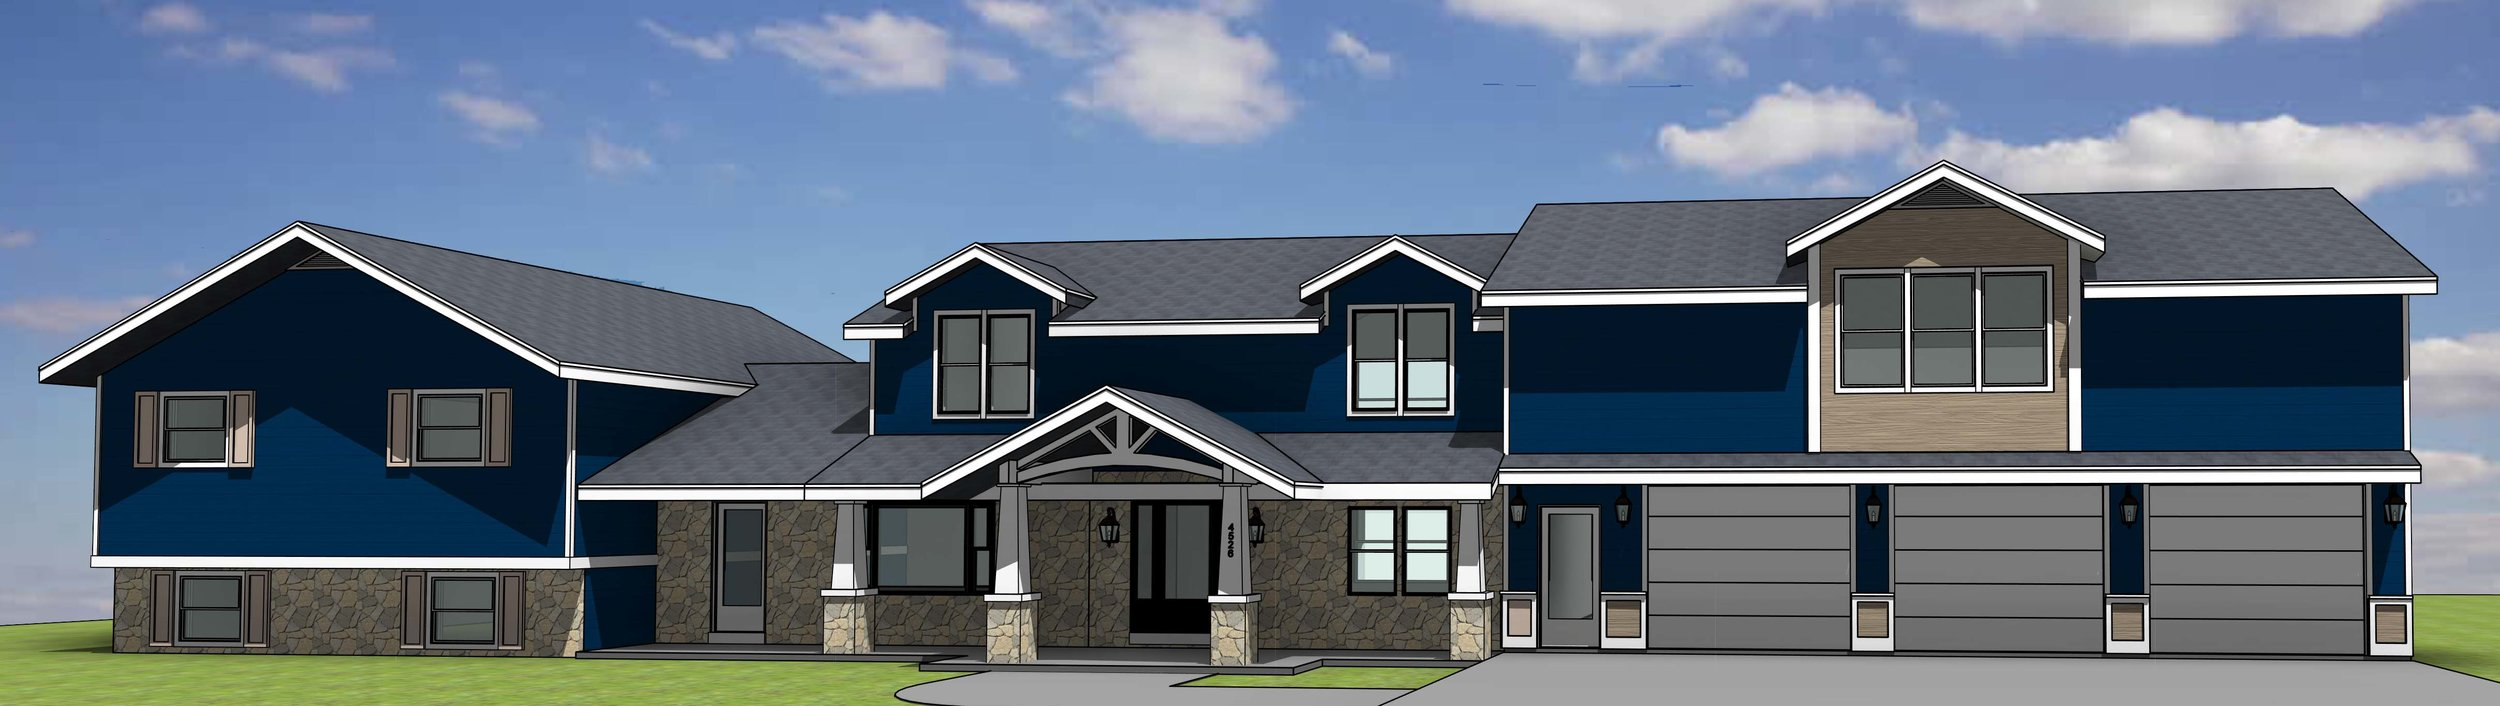 New 2nd story Master Suite addition over existing garage, new main entry and exterior finishes. (Rendering)